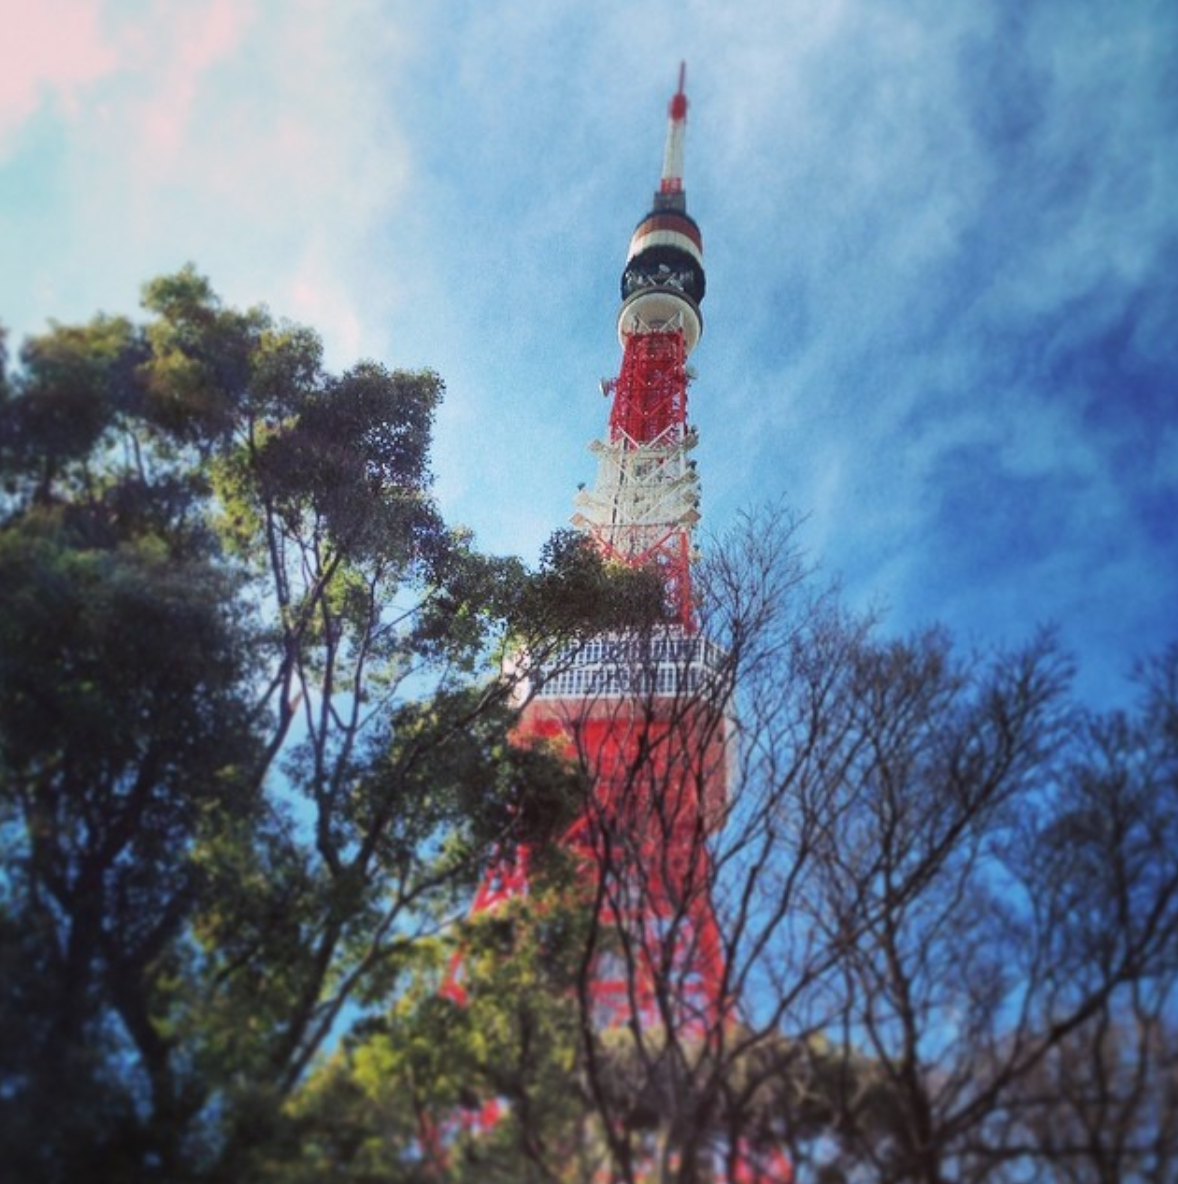 A photo taken at the base of the Tokyo Tower, which rises up red and white against a blue sky.